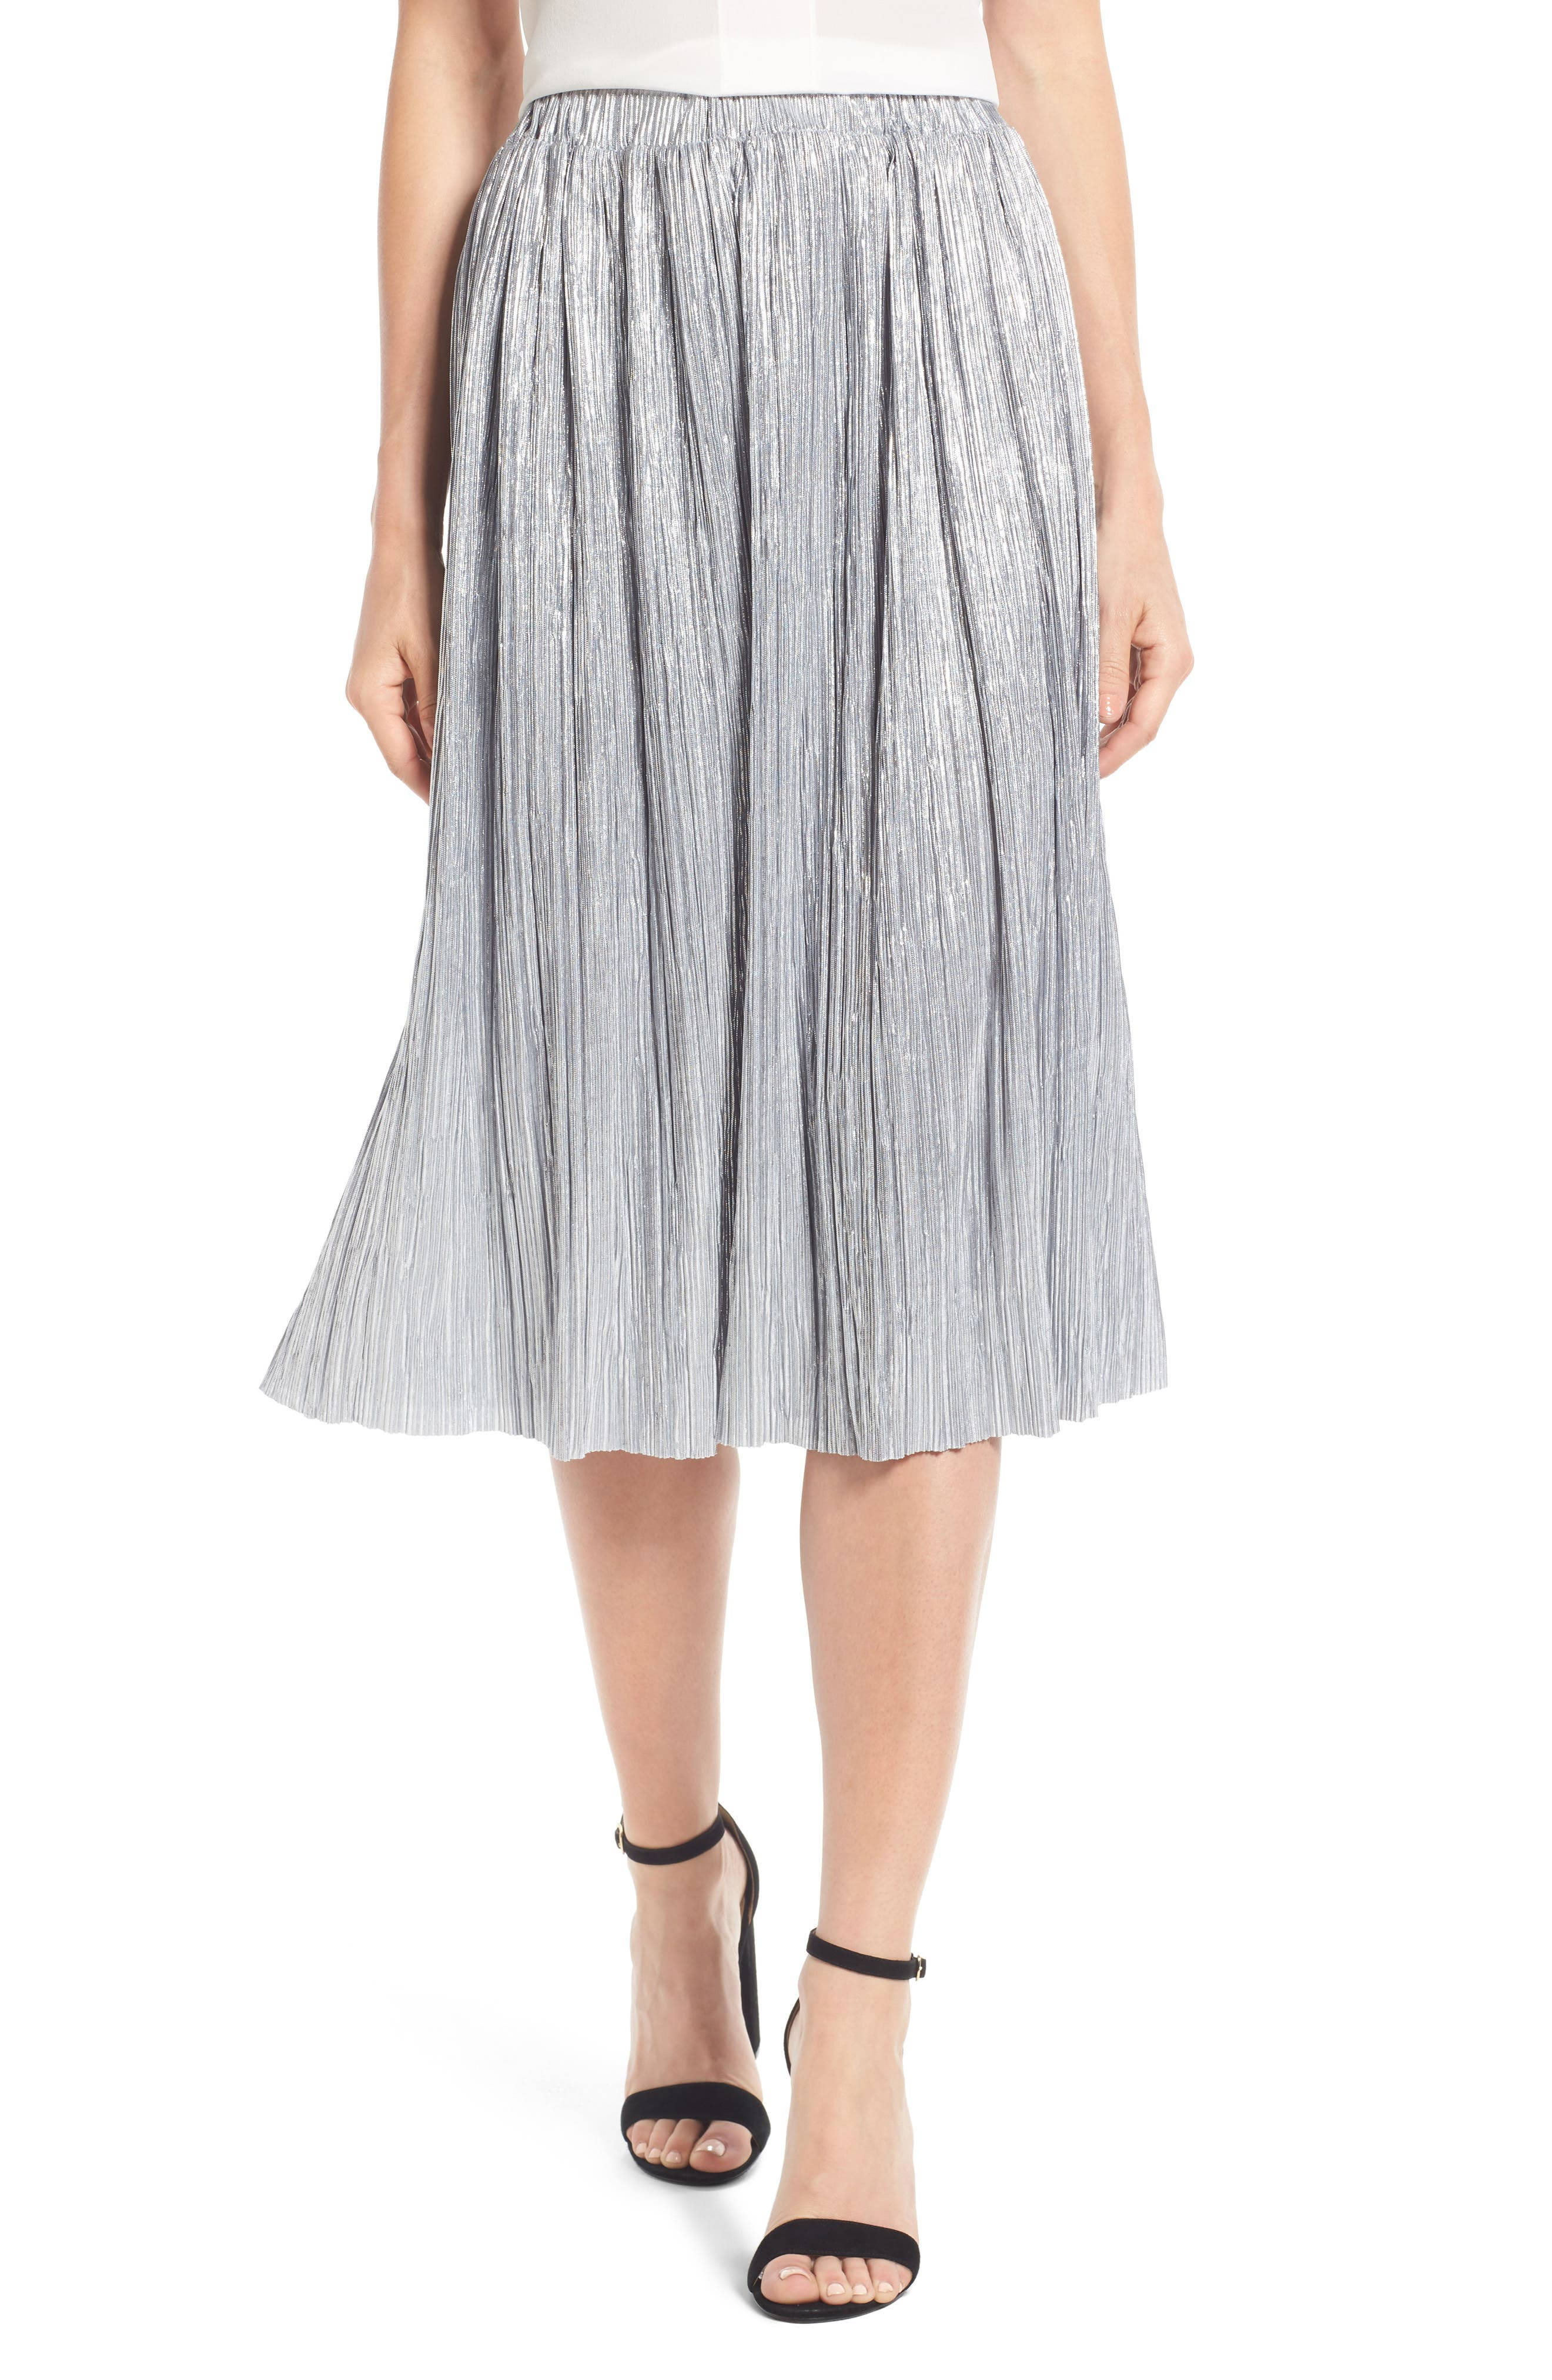 Alternate Image 1 Selected - Vince Camuto Pleat Foiled Knit Skirt